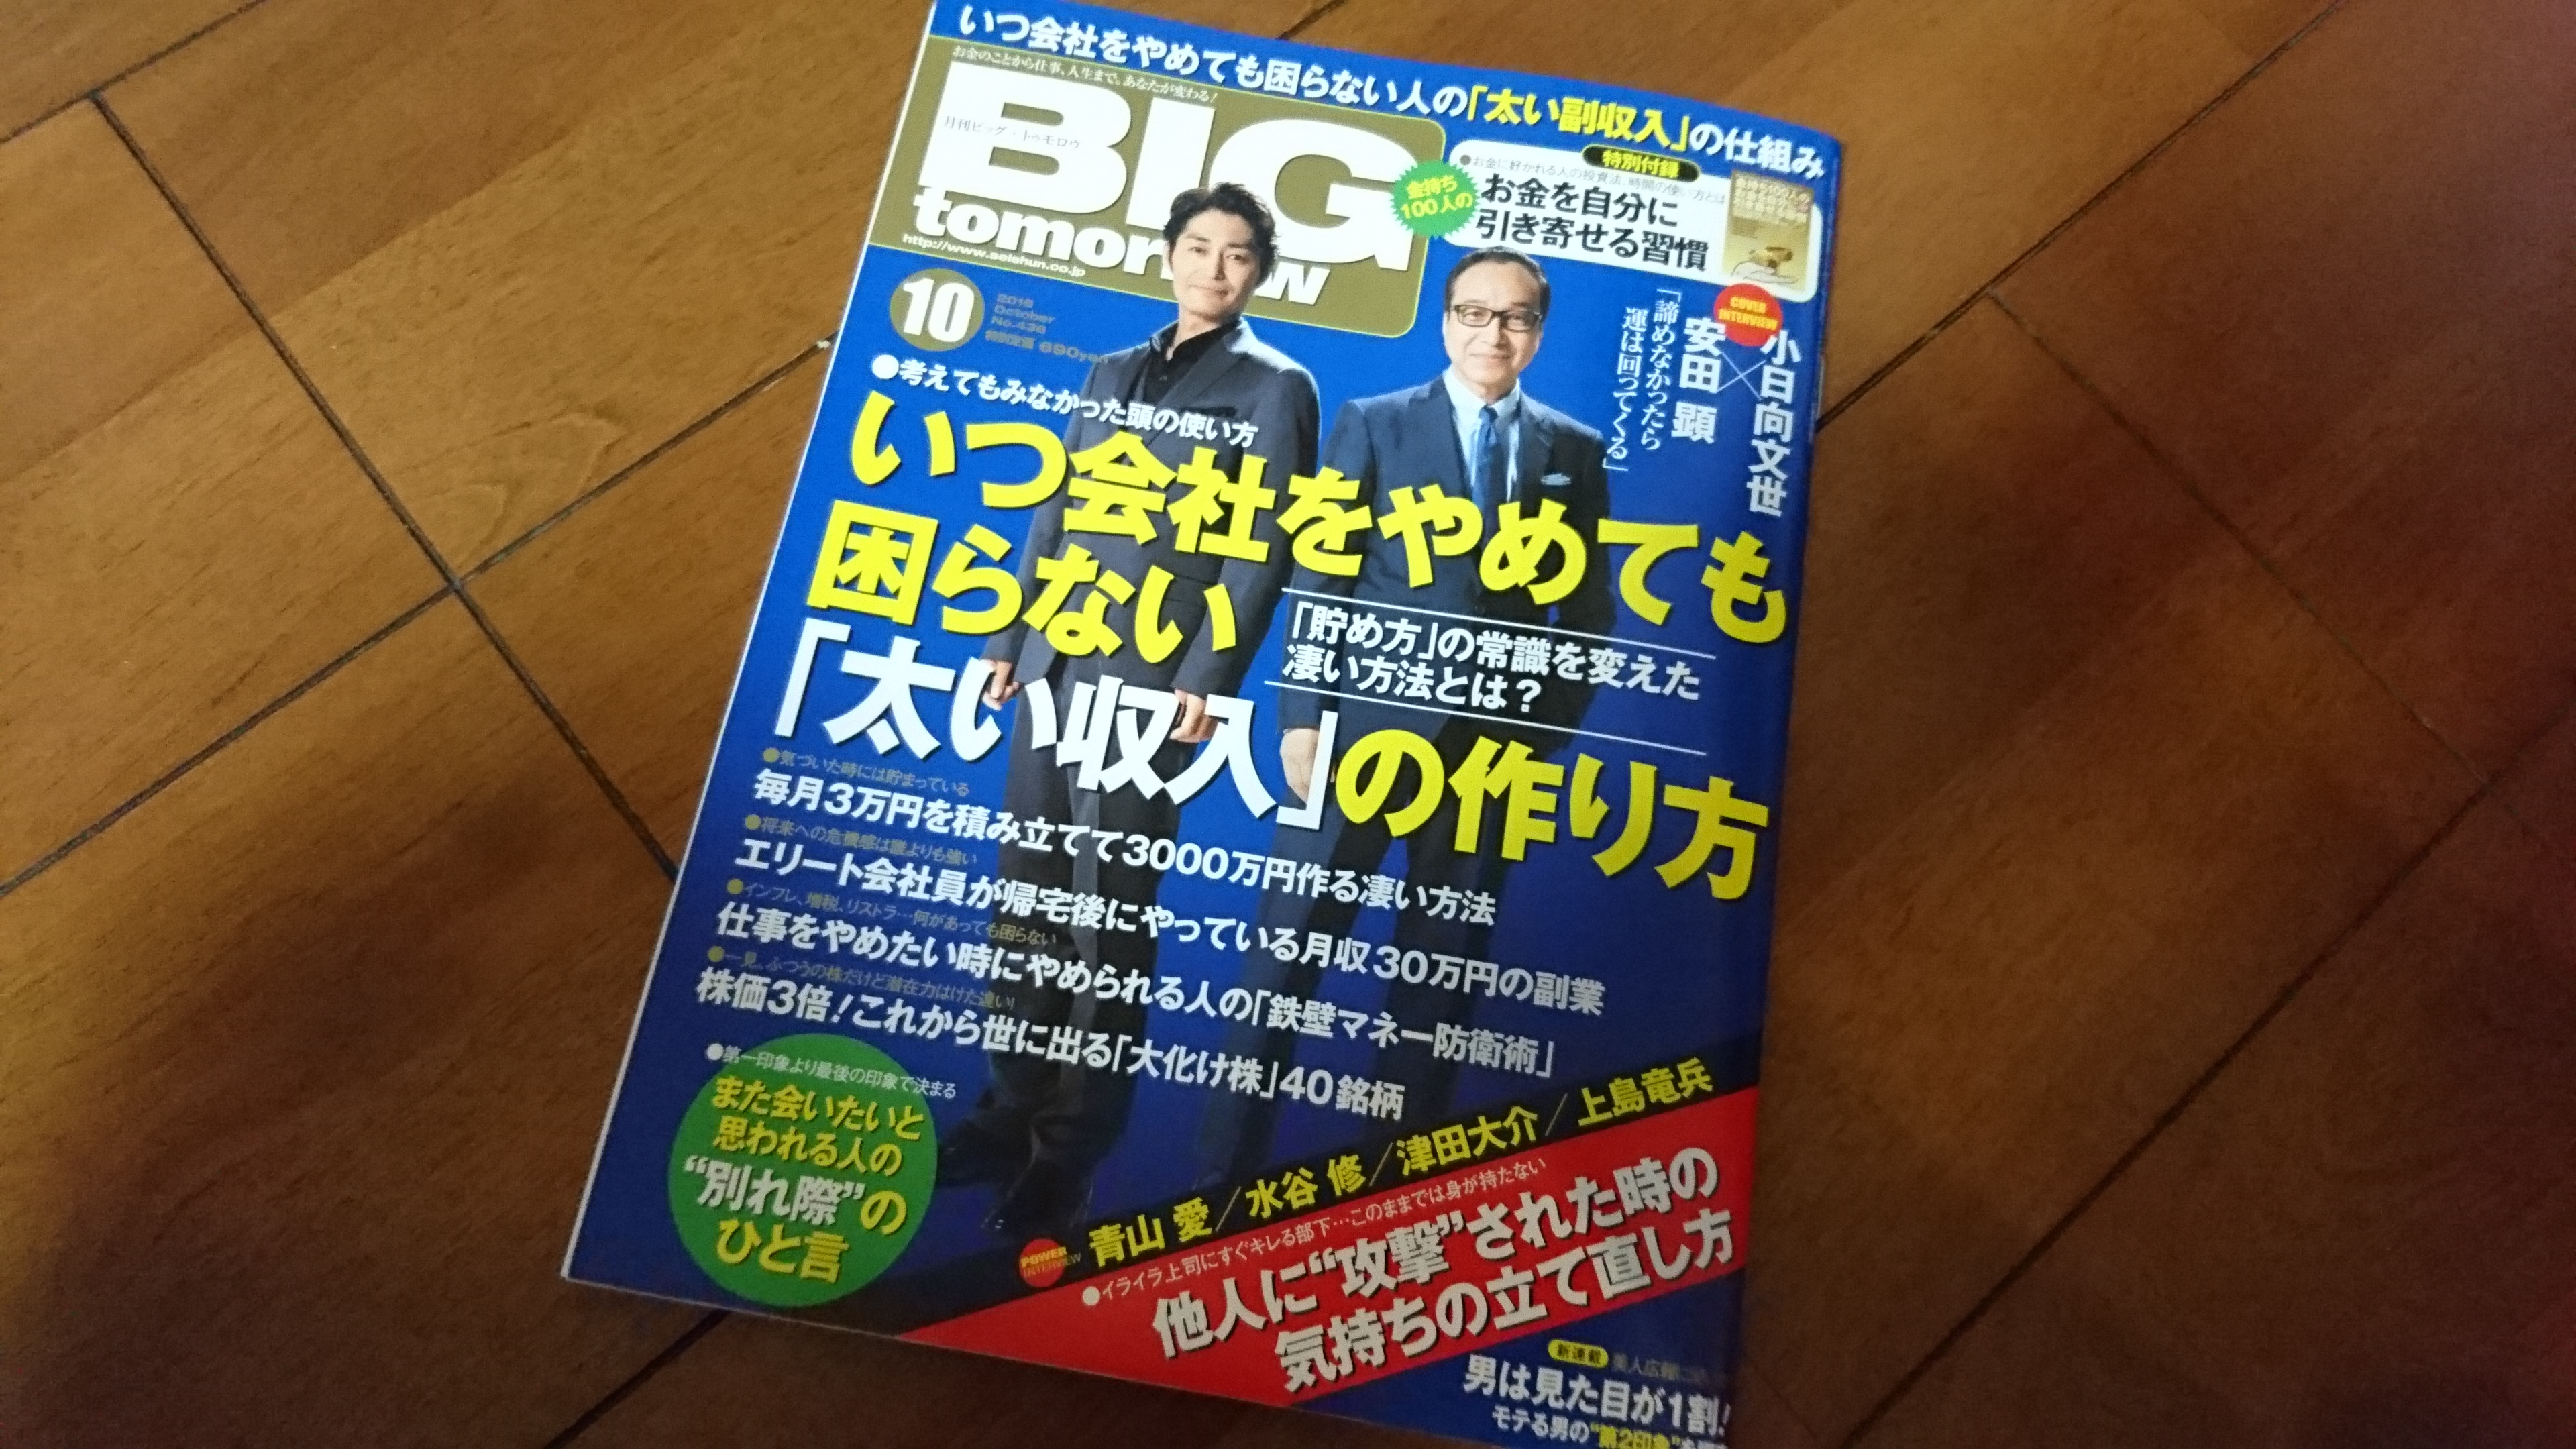 bigtomorrow01